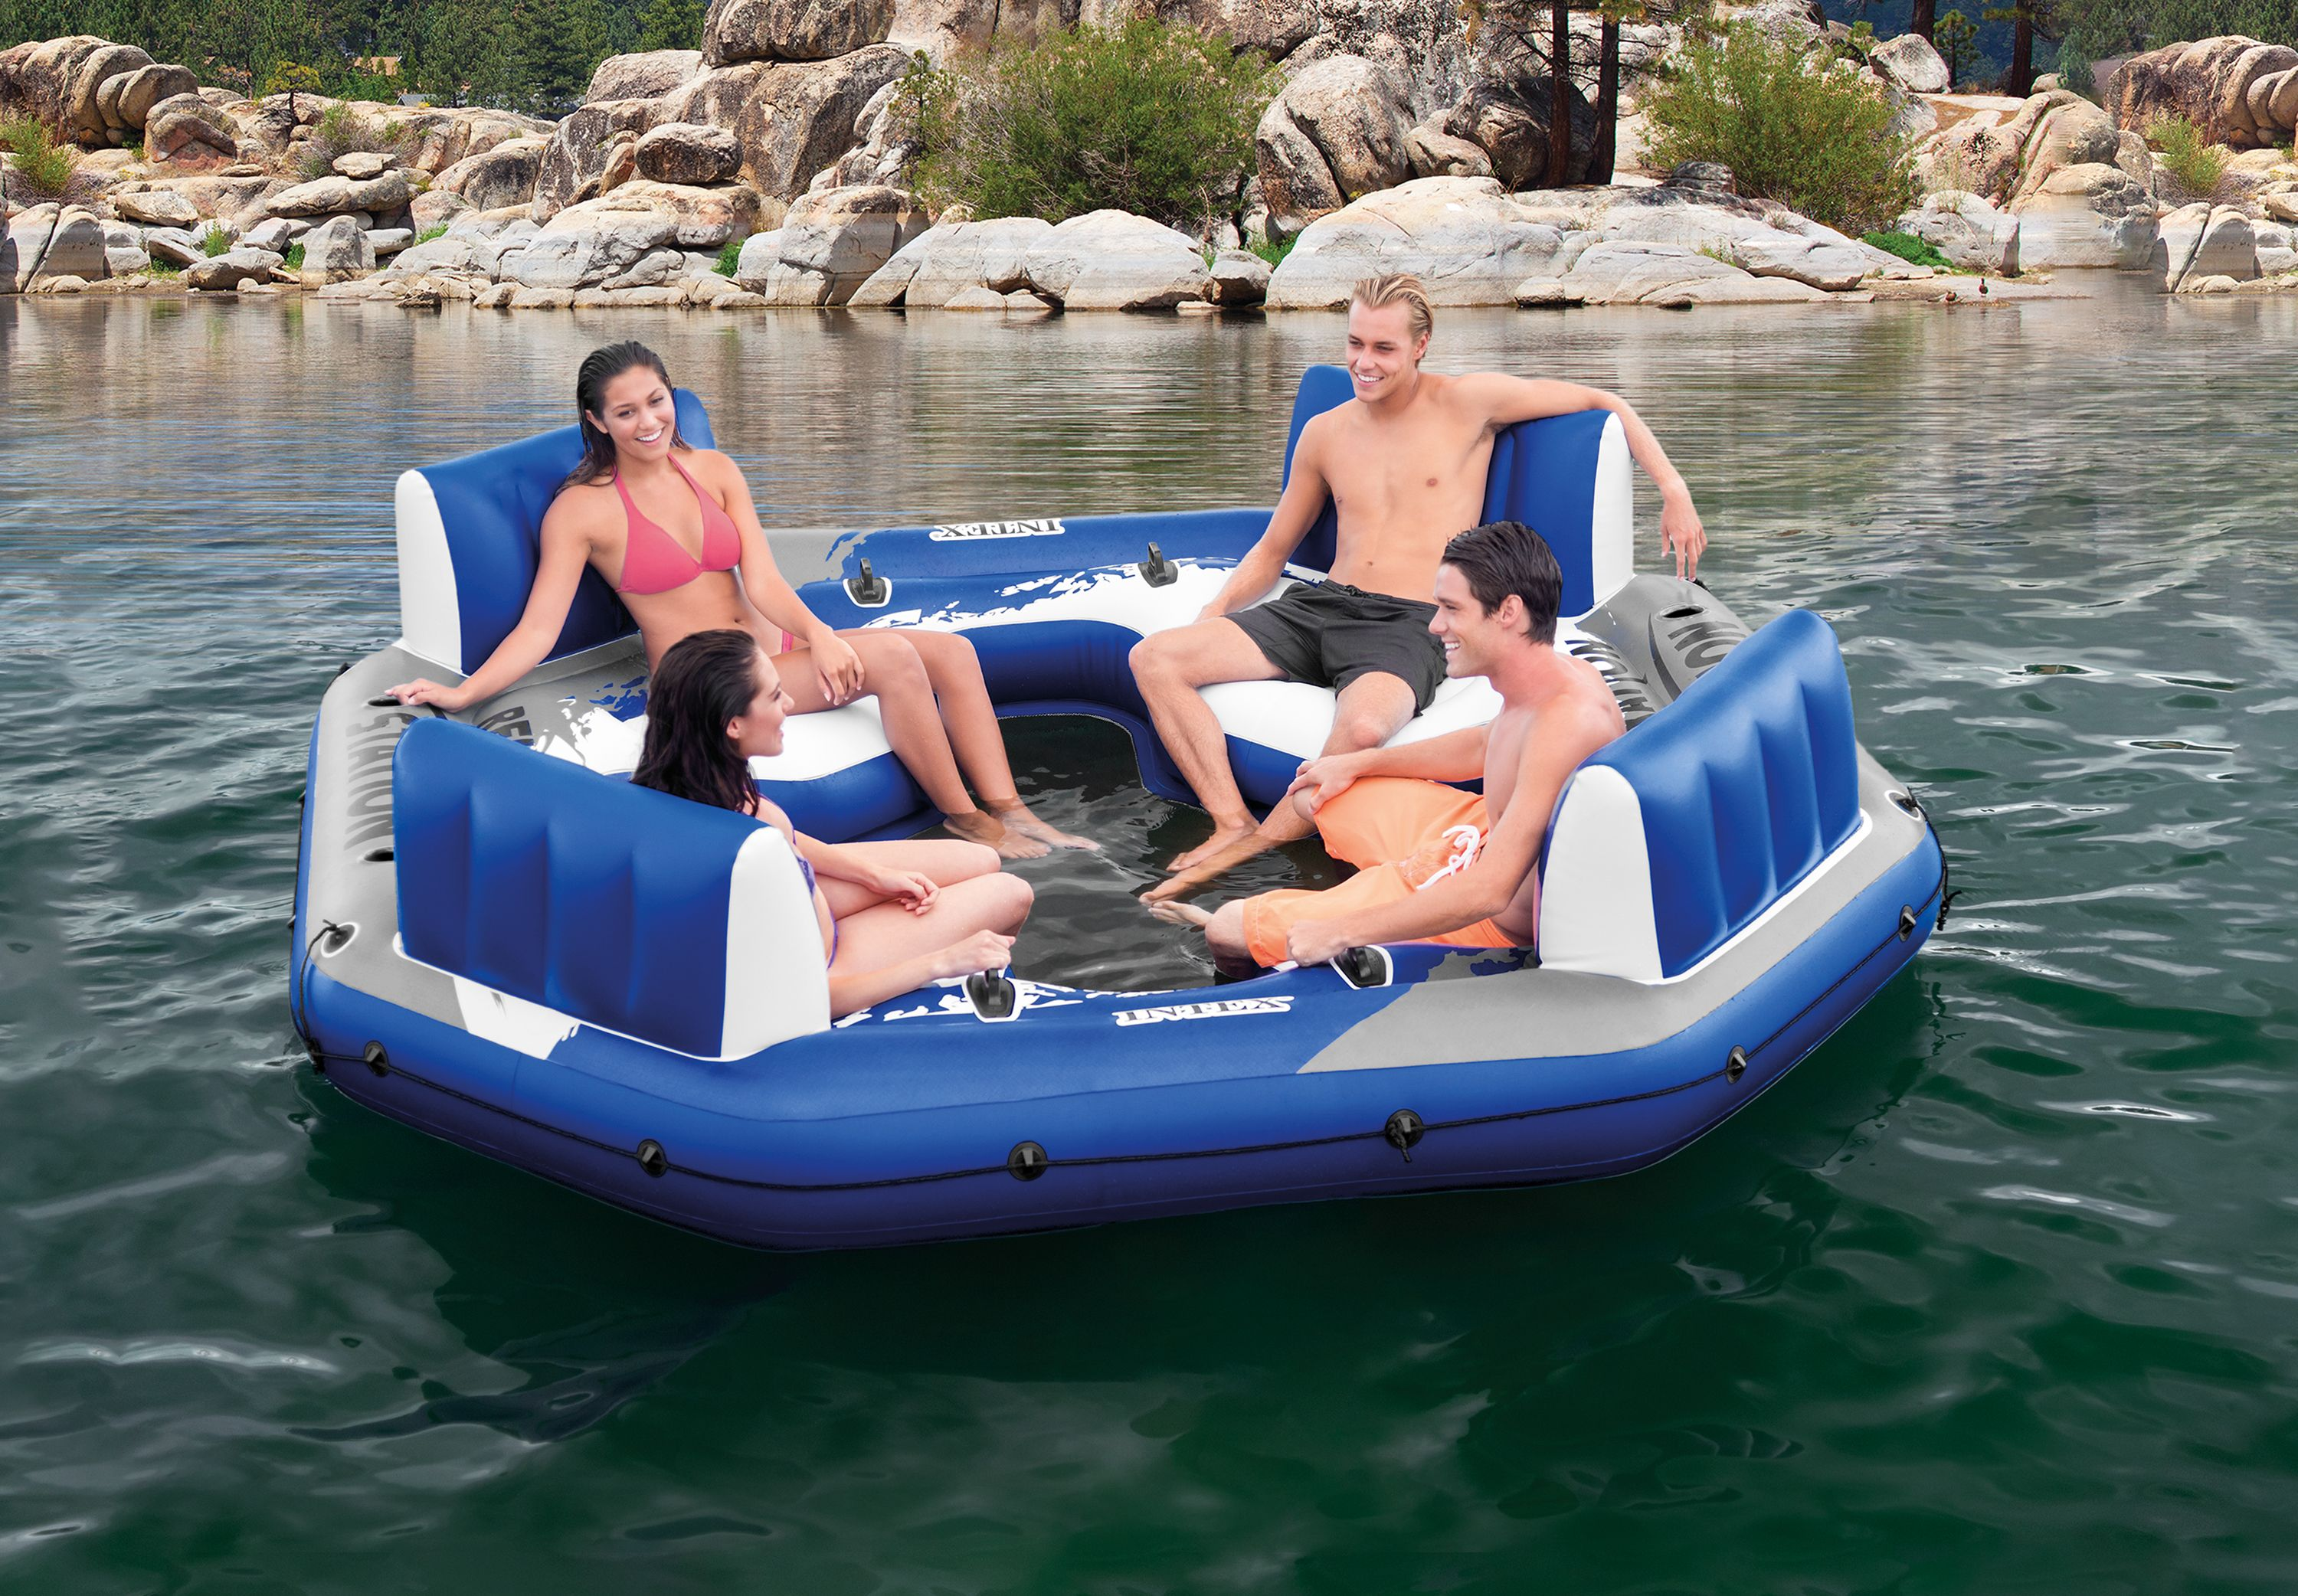 "Intex Inflatable Relaxation Station Island Floating Lounge, 120"" x 120"" x 26"" by Intex"